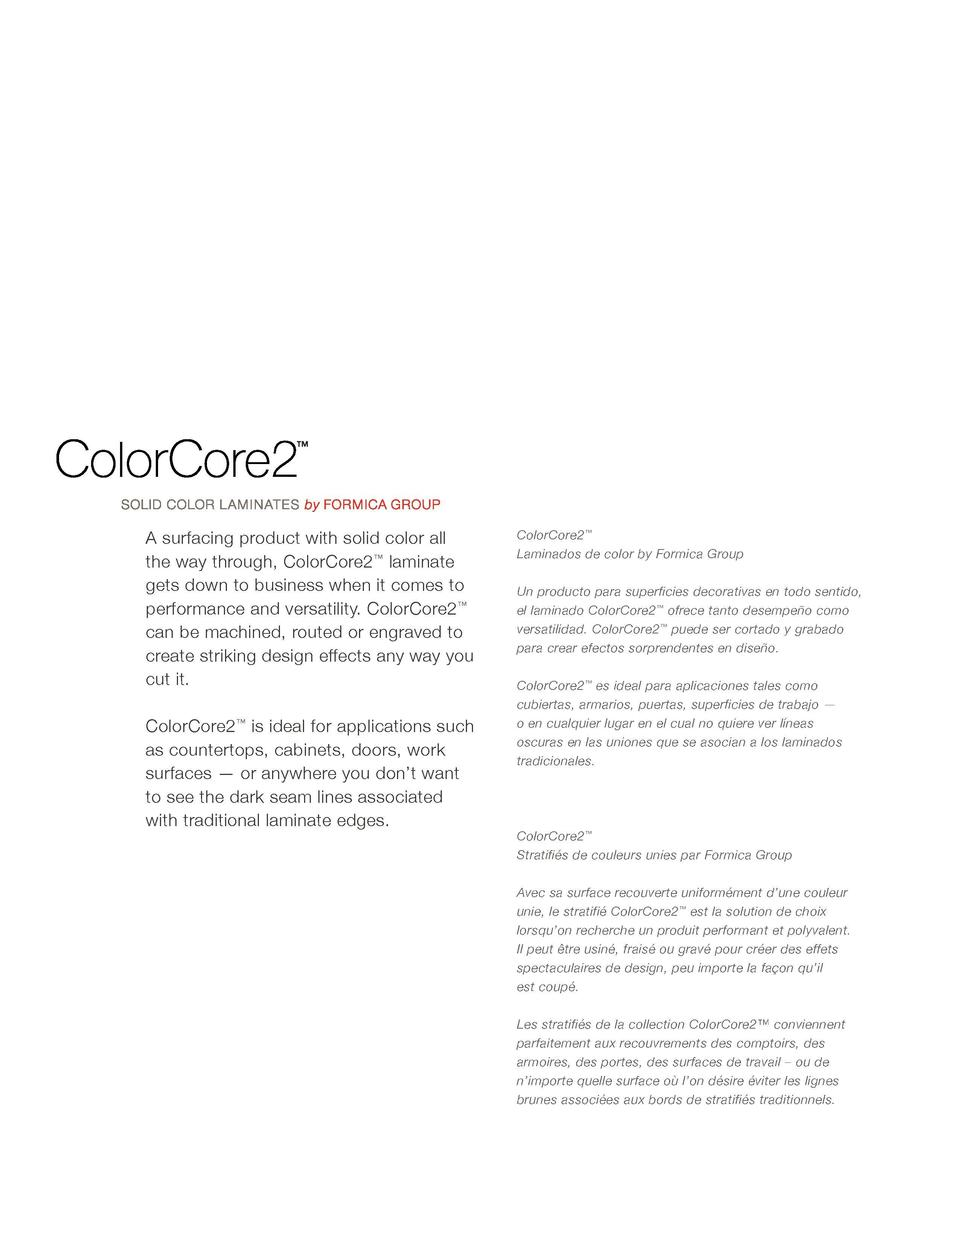 A surfacing product with solid color all the way through, ColorCore2    laminate gets down to business when it comes to pe...